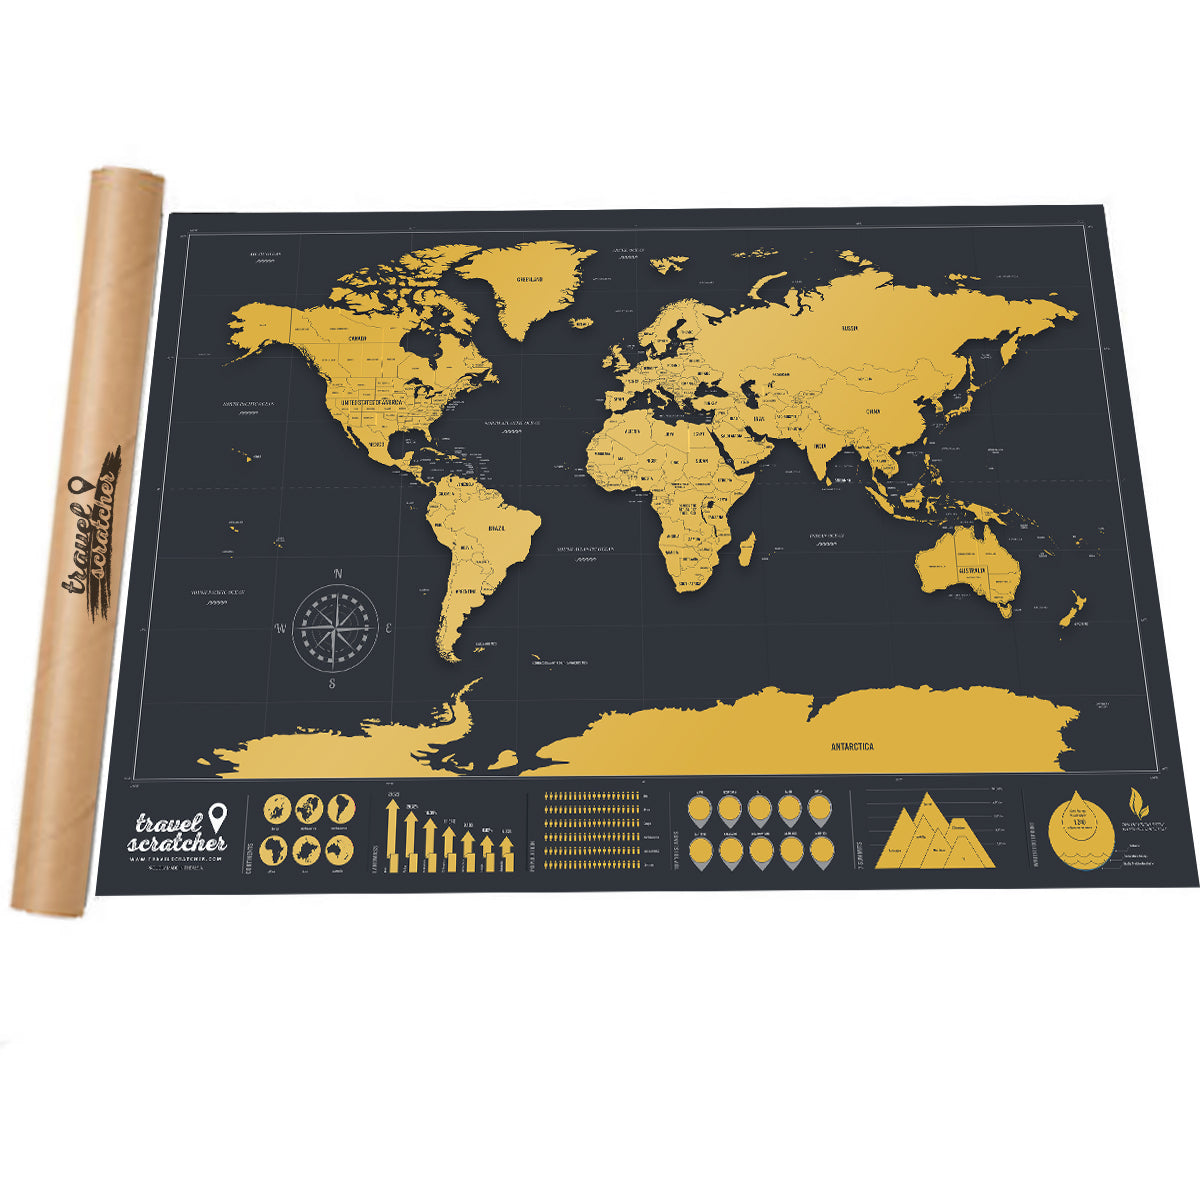 Where to buy Scratch-off World Maps - TravelScratcher on where to buy postcards, where to travel, parts a map, where to buy carbon paper, where to buy telescope lenses, where to buy compass, where to buy dice, where to buy paracord, where to buy nylon cord, where to buy music, where to buy money belt, where to buy illustrations, where to buy hand warmers, where to buy space blanket, us world map, flu outbreak map, us and mexico map, where to buy large us map,